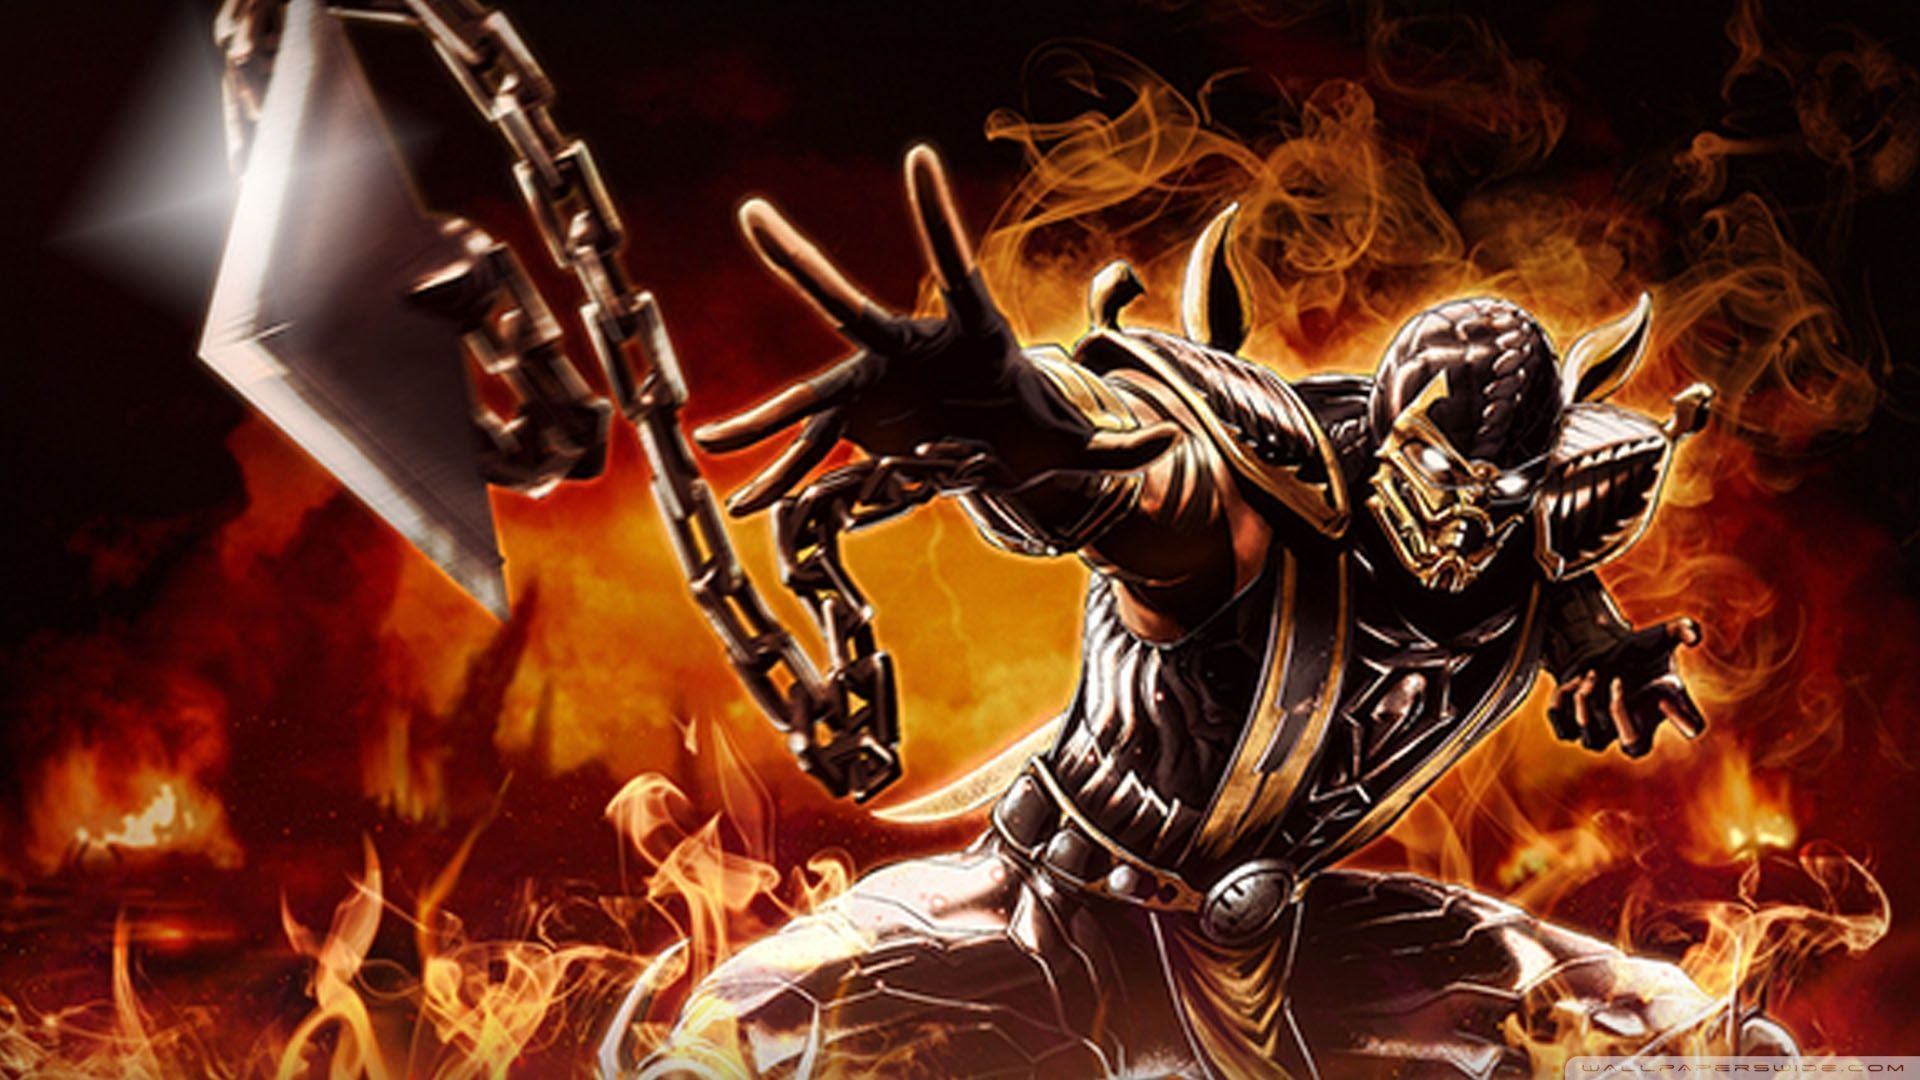 scorpion mortal kombat x wallpaper hd